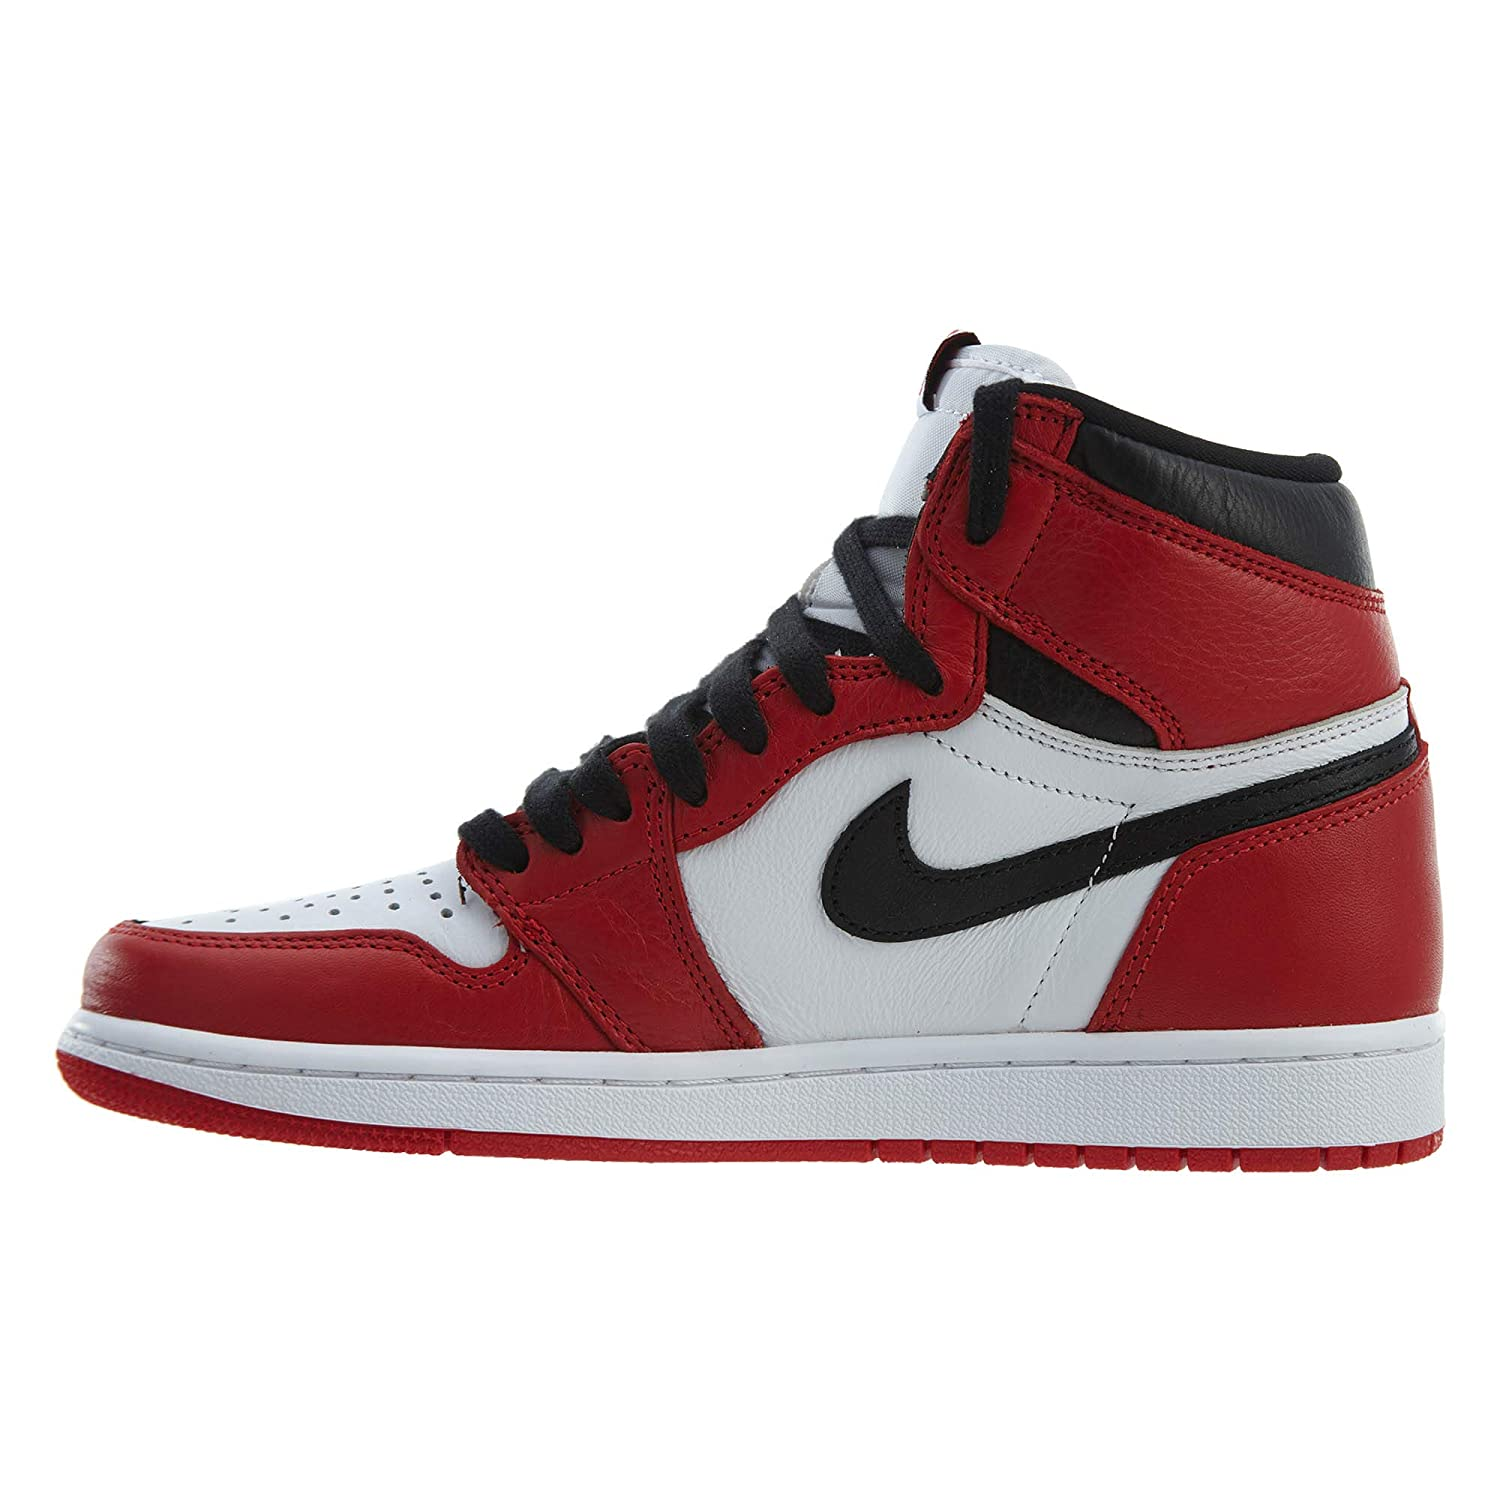 aa7c0365914e0 AIR Jordan 1 Retro HIGH OG NRG 'Igloo' - 861428-100: Amazon.co.uk: Shoes &  Bags